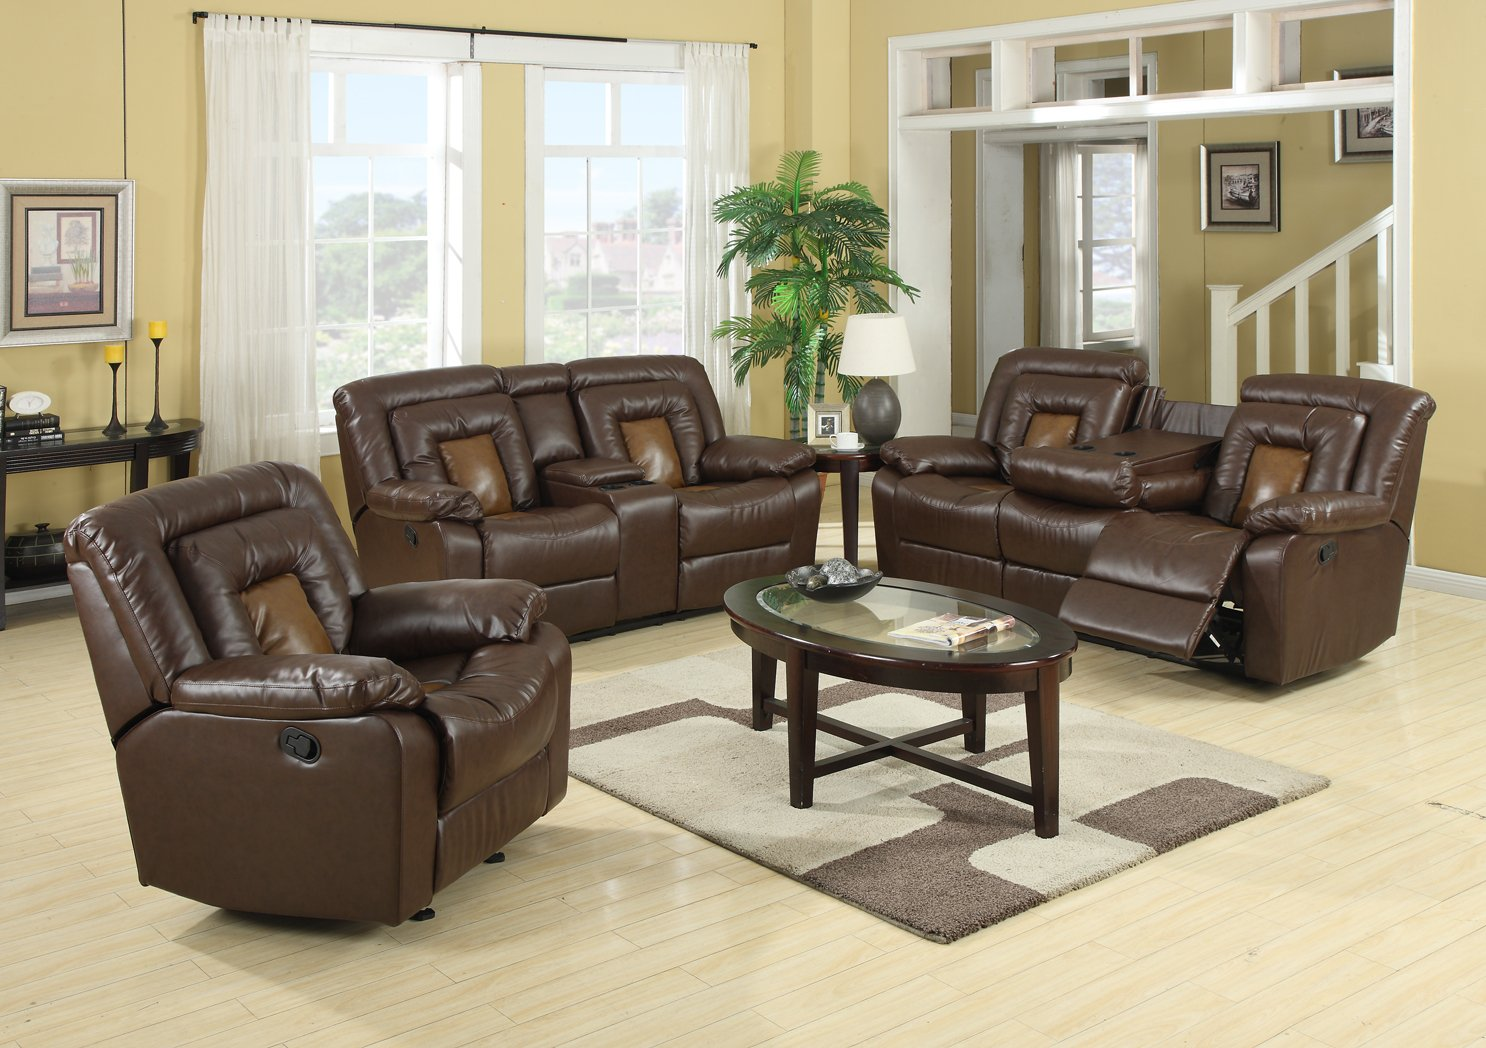 Traveller Location: GTU Furniture Cobra Pu-Leather Reclining Sofa Loveseat Recliner  Set, Luxurious Living Room Furniture (Sofa & Loveseat, Brown): Kitchen &  Dining